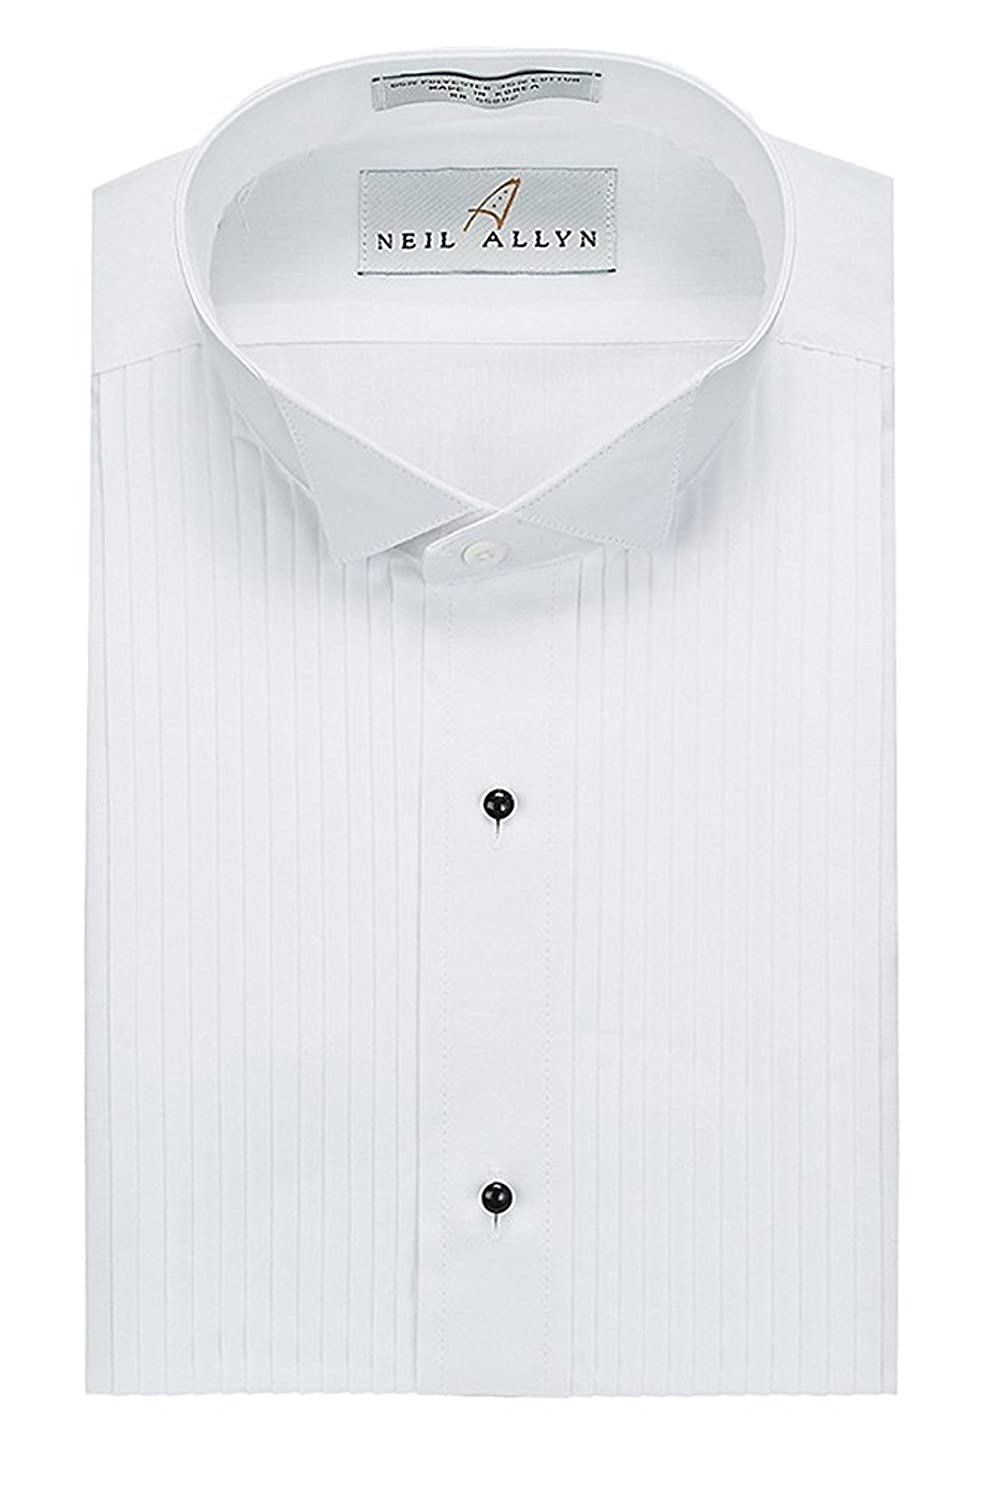 Neil Allyn Slim Fit Tuxedo Shirt - 100% Cotton Wing Collar with French Cuffs